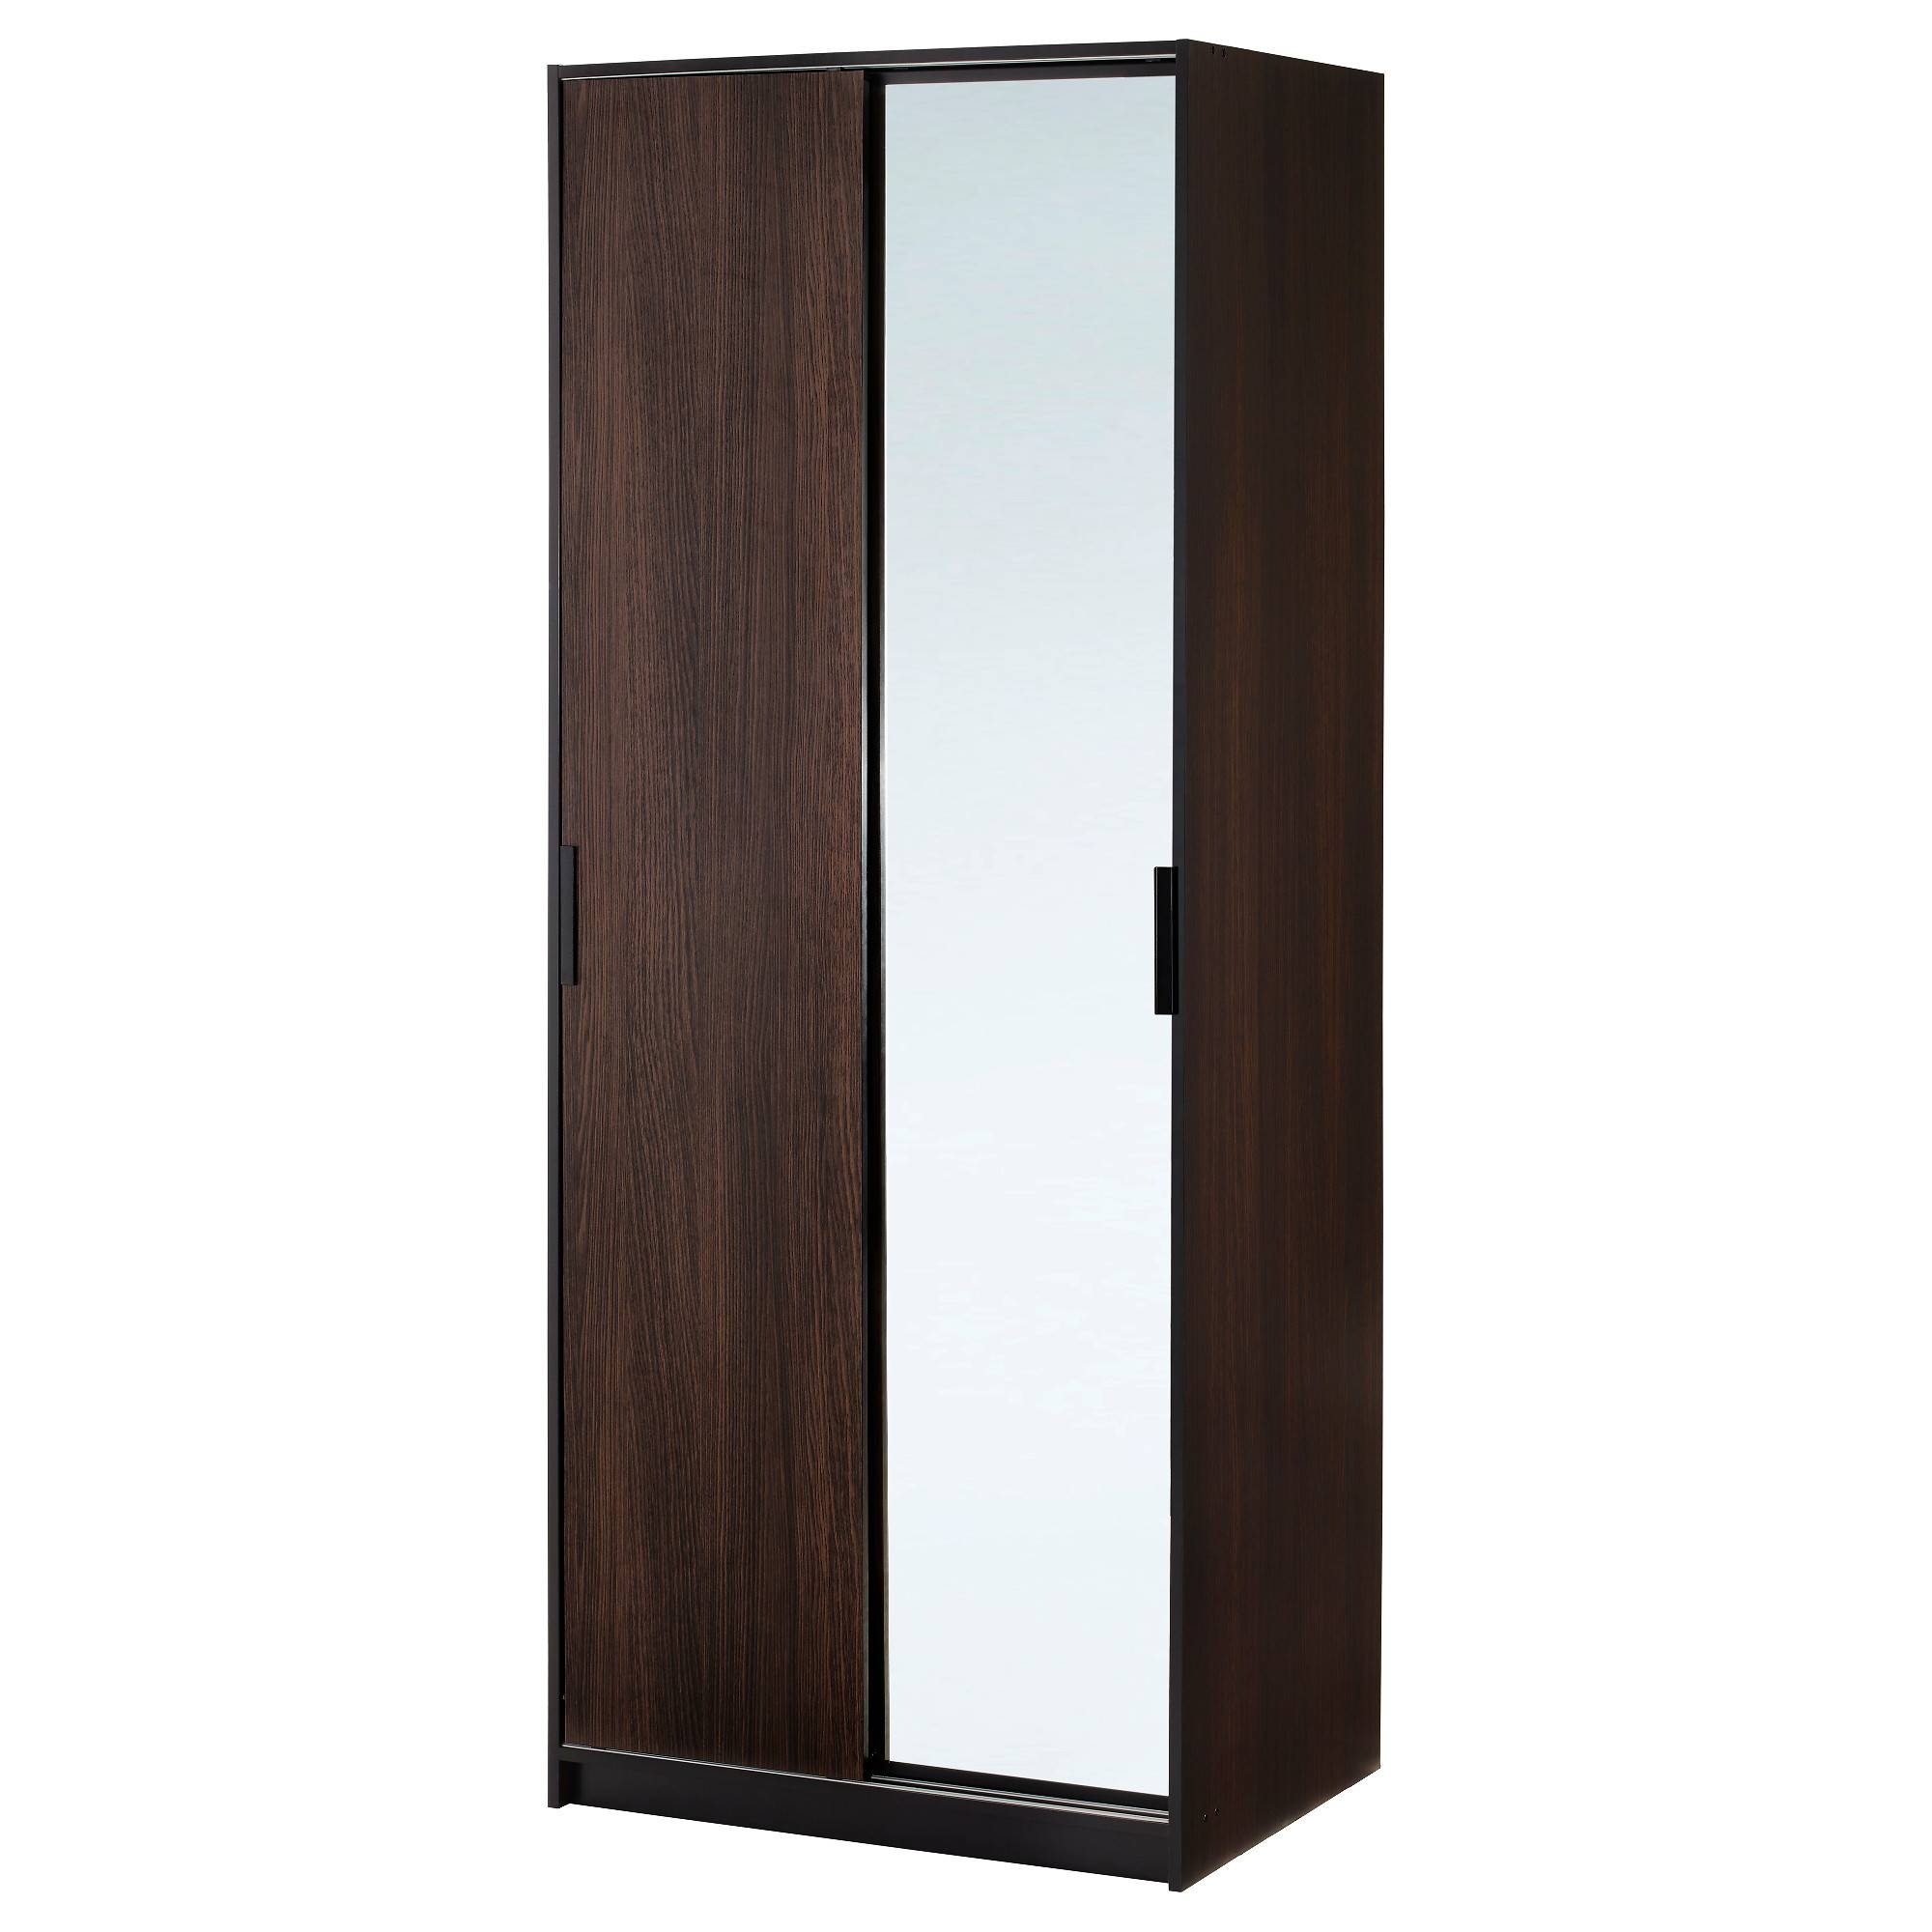 Wardrobes, Armoires & Closets - Ikea with regard to Solid Dark Wood Wardrobes (Image 30 of 30)